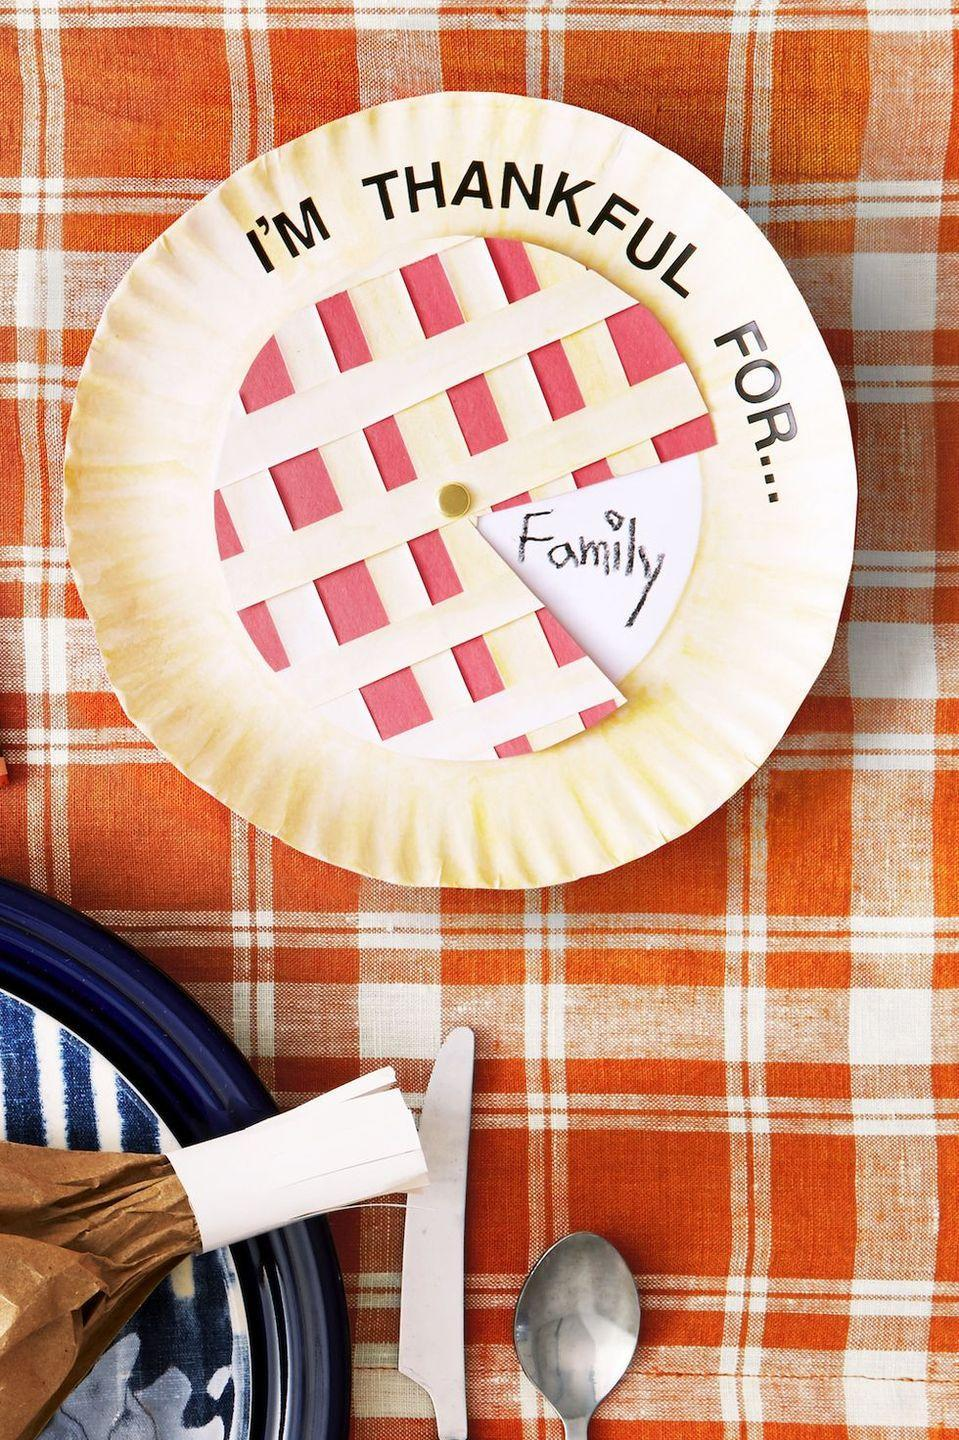 "<p>Kids can give things for family and the things they love with this sweet as pie gratitude chart.<br></p><p><strong>Make the Pie:</strong> Cut out a construction paper circle the same size as the inside of a paper plate. Attach with brass fastener, then remove a ""slice"" of pie. Write ""I'm Thankful for …"" along the top and ask them to add responses as they rotate the ""slice"" around the pie.</p><p><a class=""link rapid-noclick-resp"" href=""https://www.amazon.com/ACCO-Plated-Brass-Fasteners-A7071703B/dp/B002YK4IHA?tag=syn-yahoo-20&ascsubtag=%5Bartid%7C10050.g.22626432%5Bsrc%7Cyahoo-us"" rel=""nofollow noopener"" target=""_blank"" data-ylk=""slk:SHOP BRASS FASTENERS"">SHOP BRASS FASTENERS</a></p>"